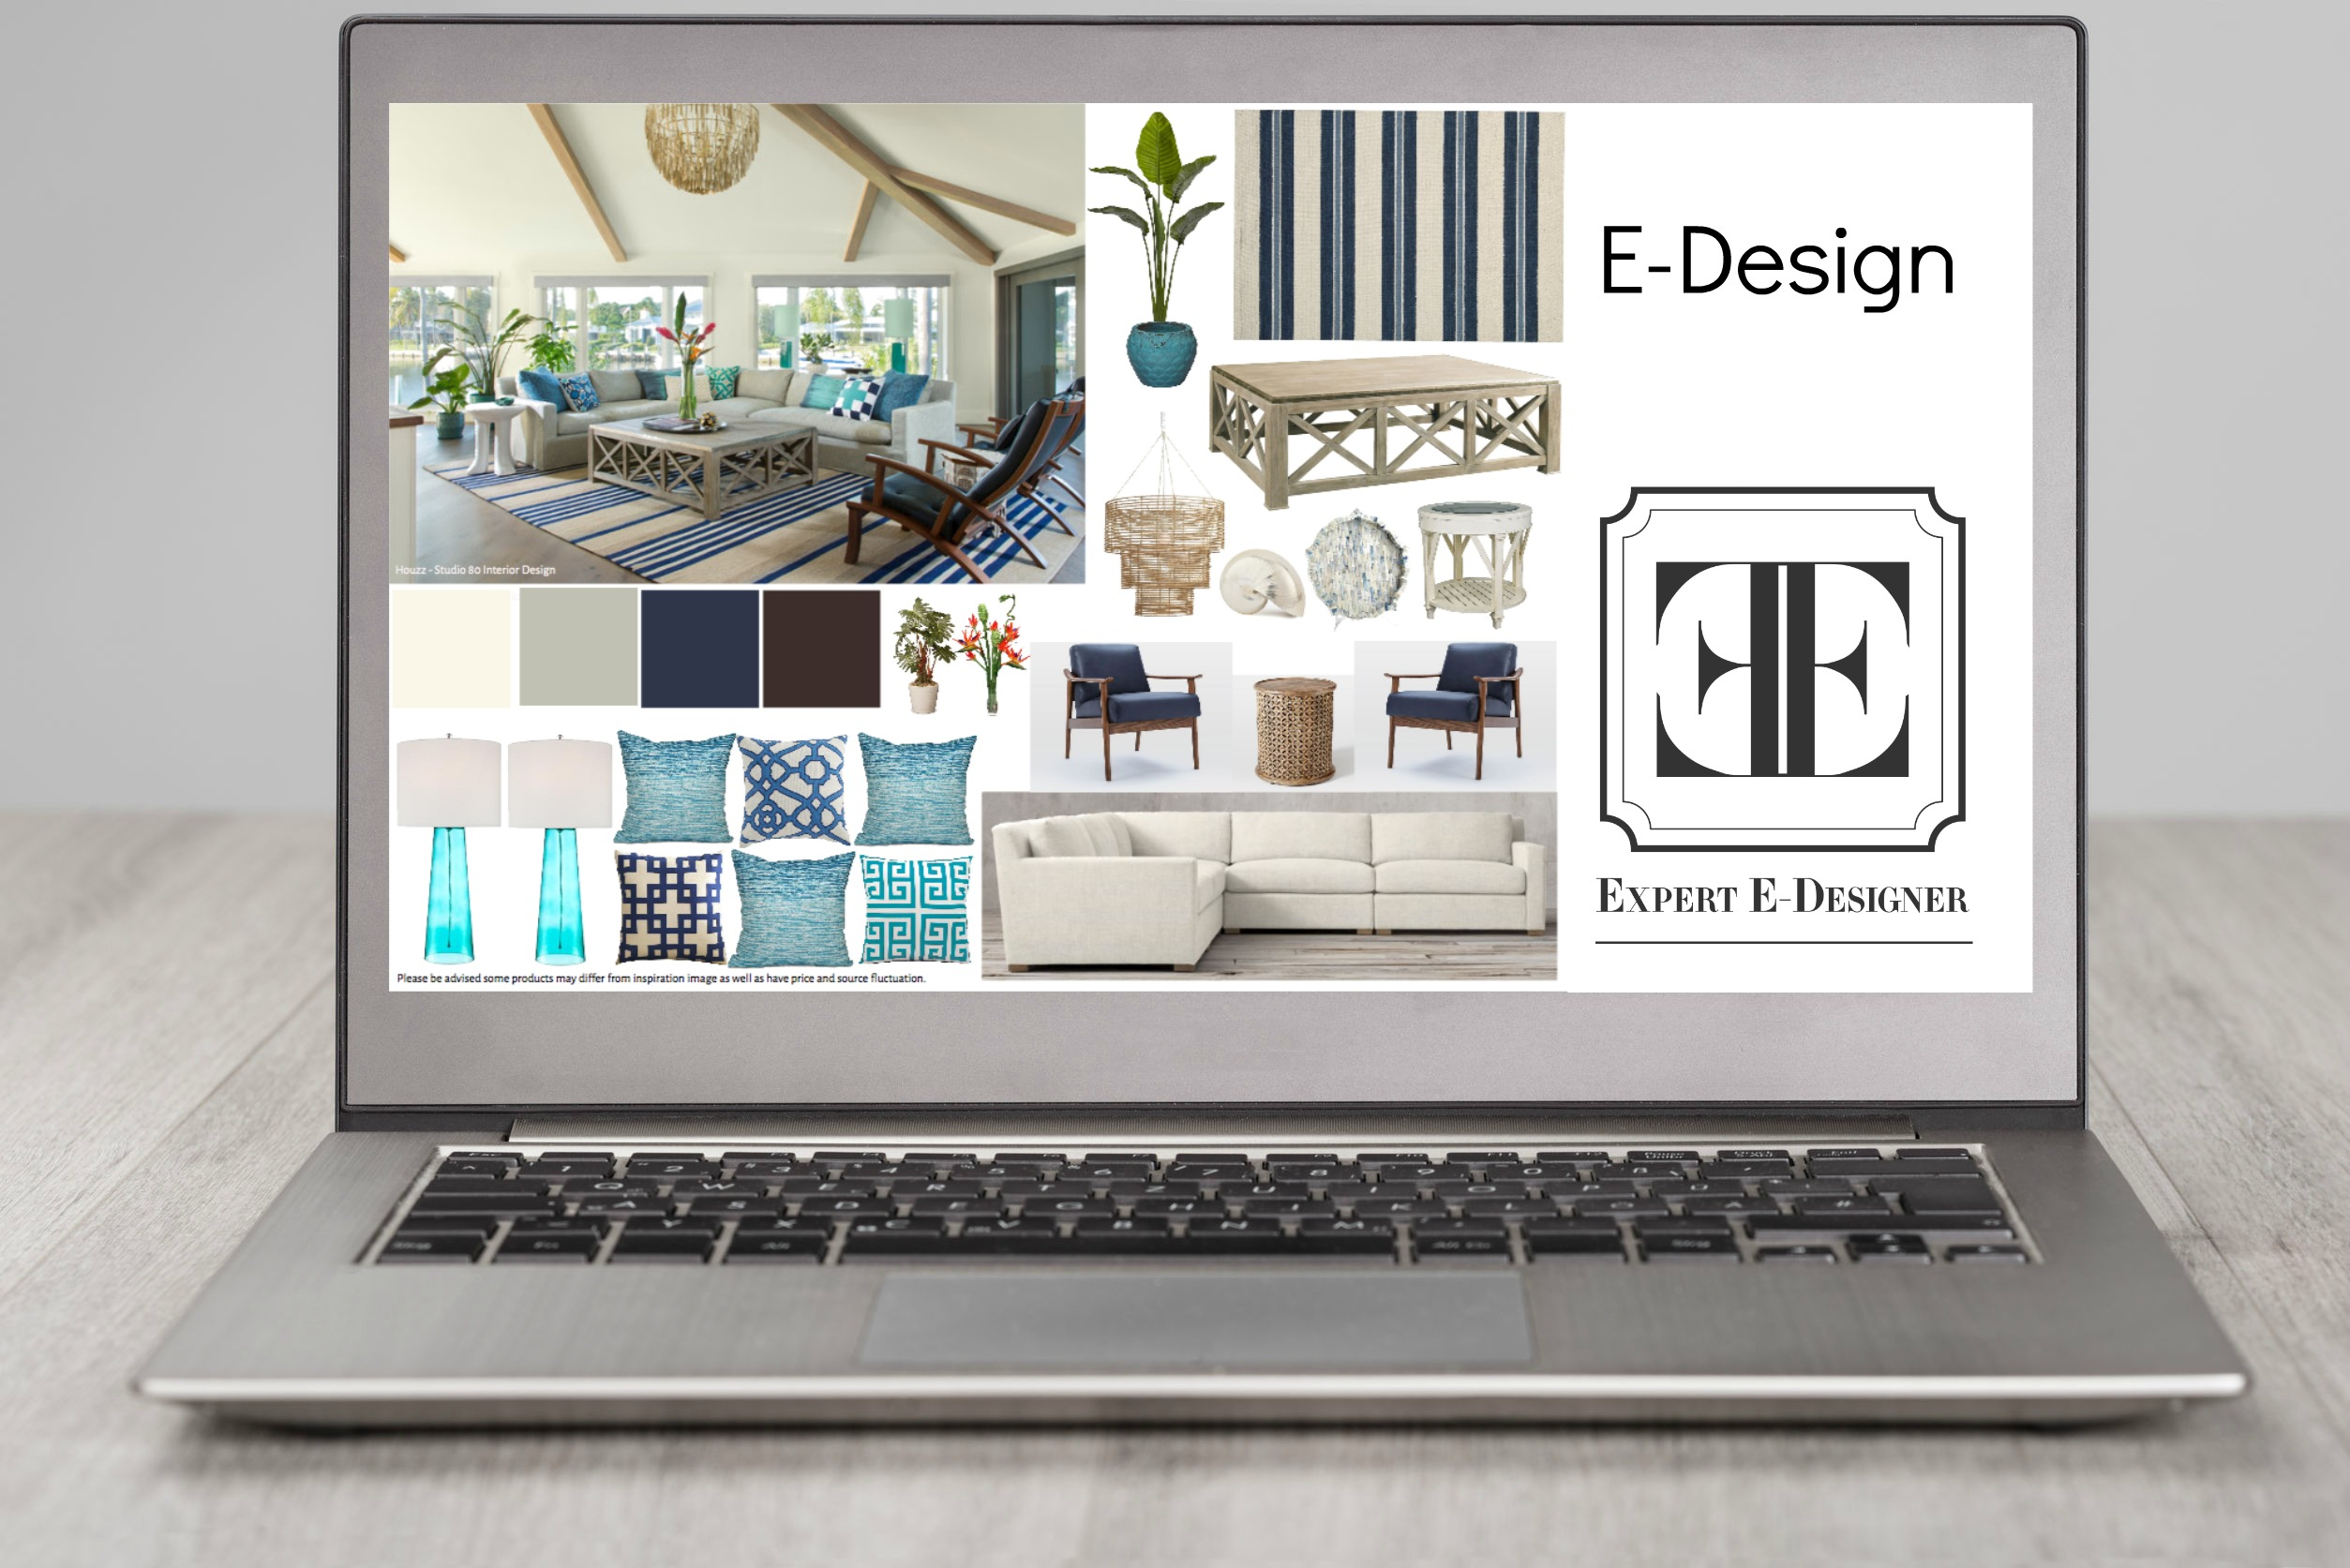 E Design Title for website